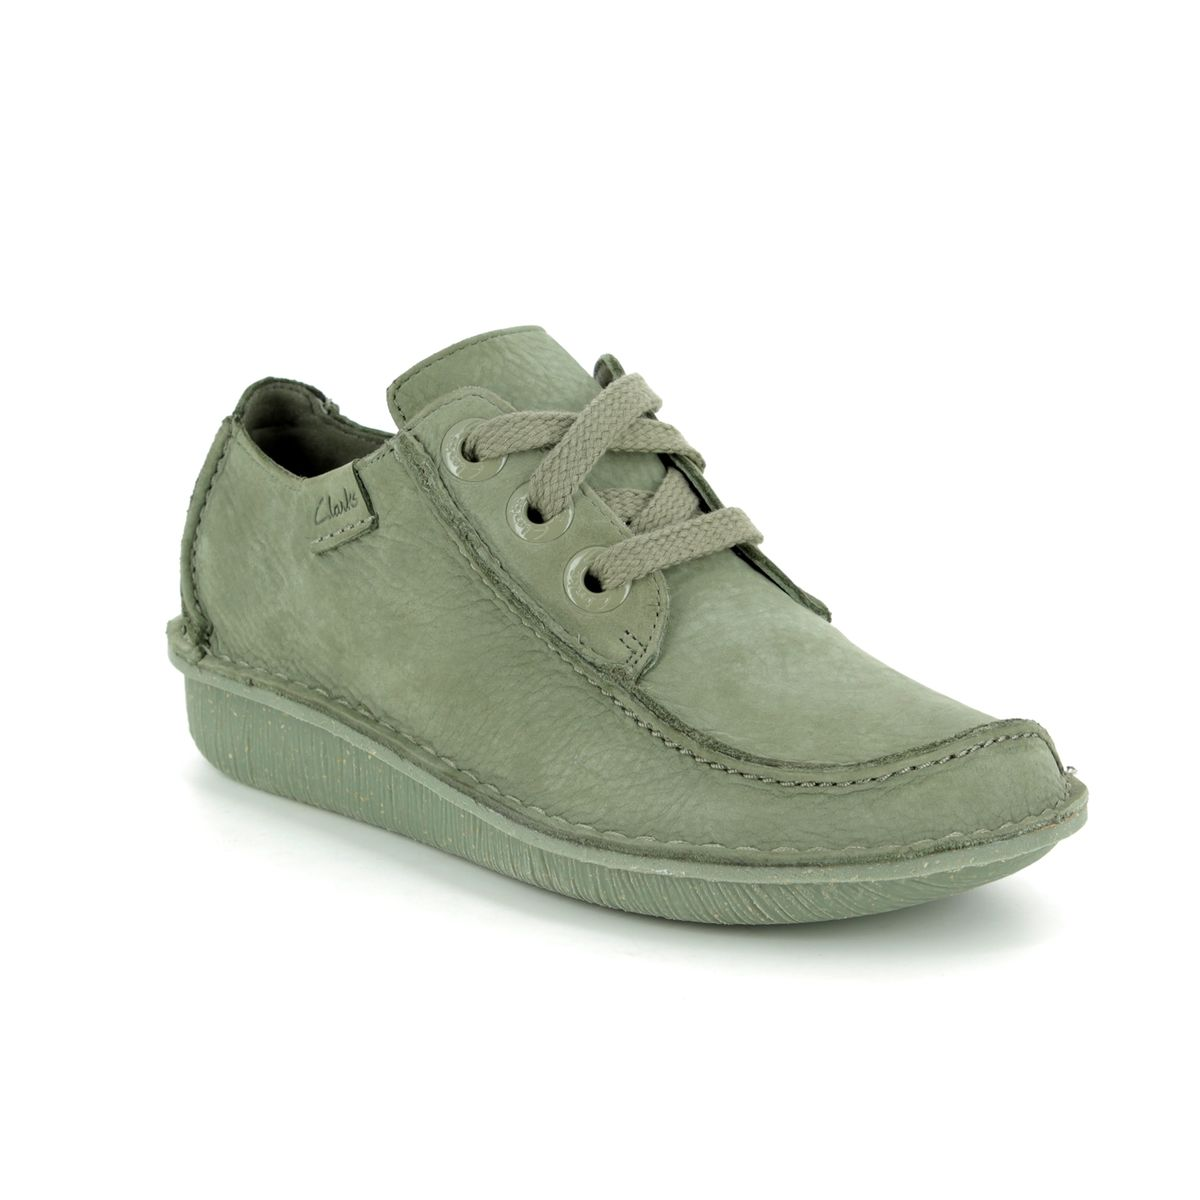 c3c1eba9706 Clarks Lacing Shoes - Sage green - 402324D FUNNY DREAM